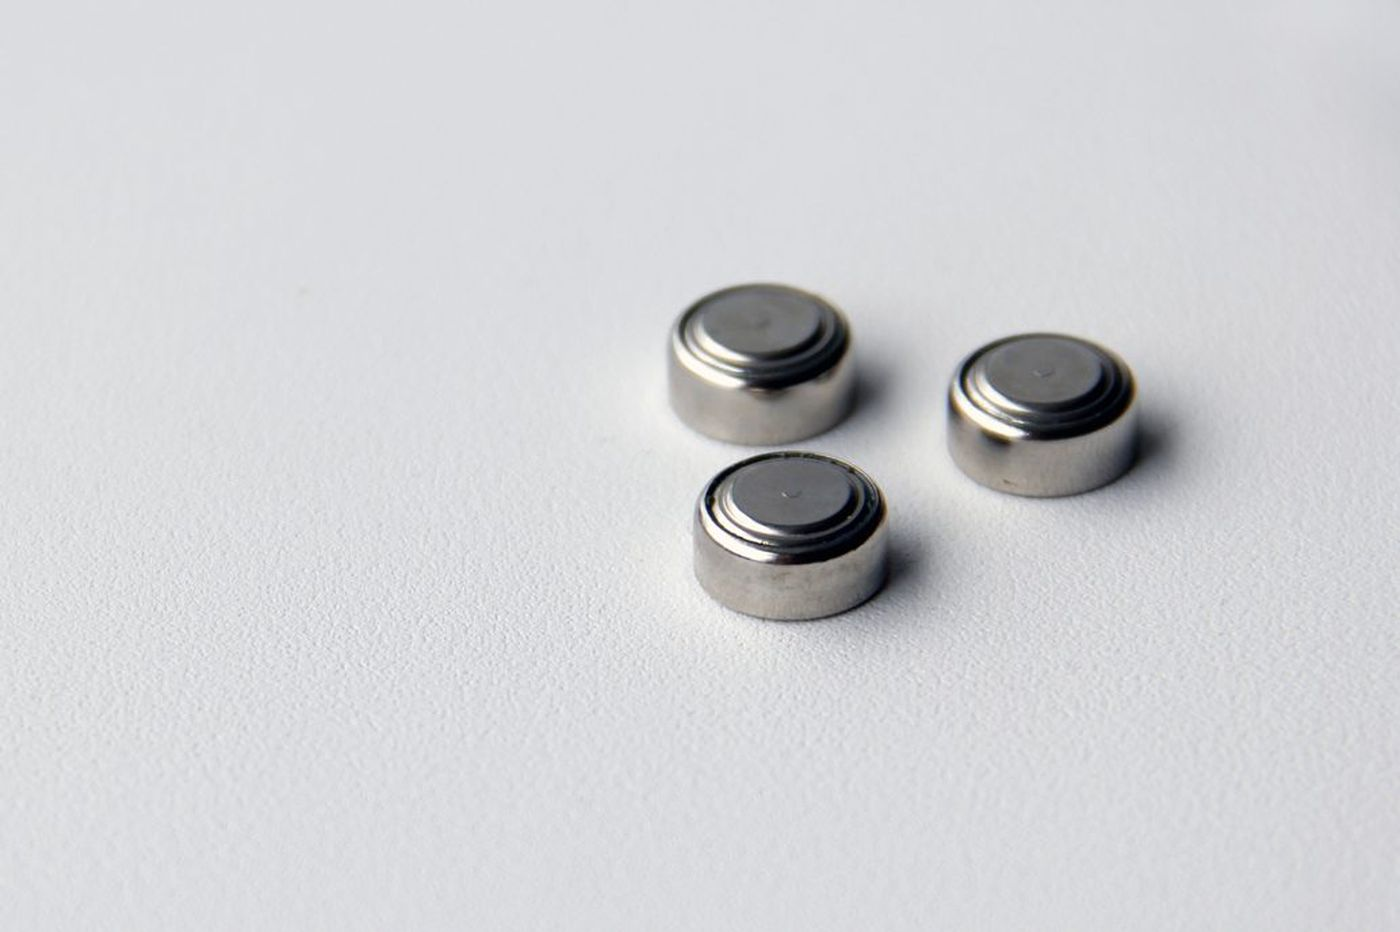 What to do after a child swallows a button battery? Try honey, CHOP study suggests